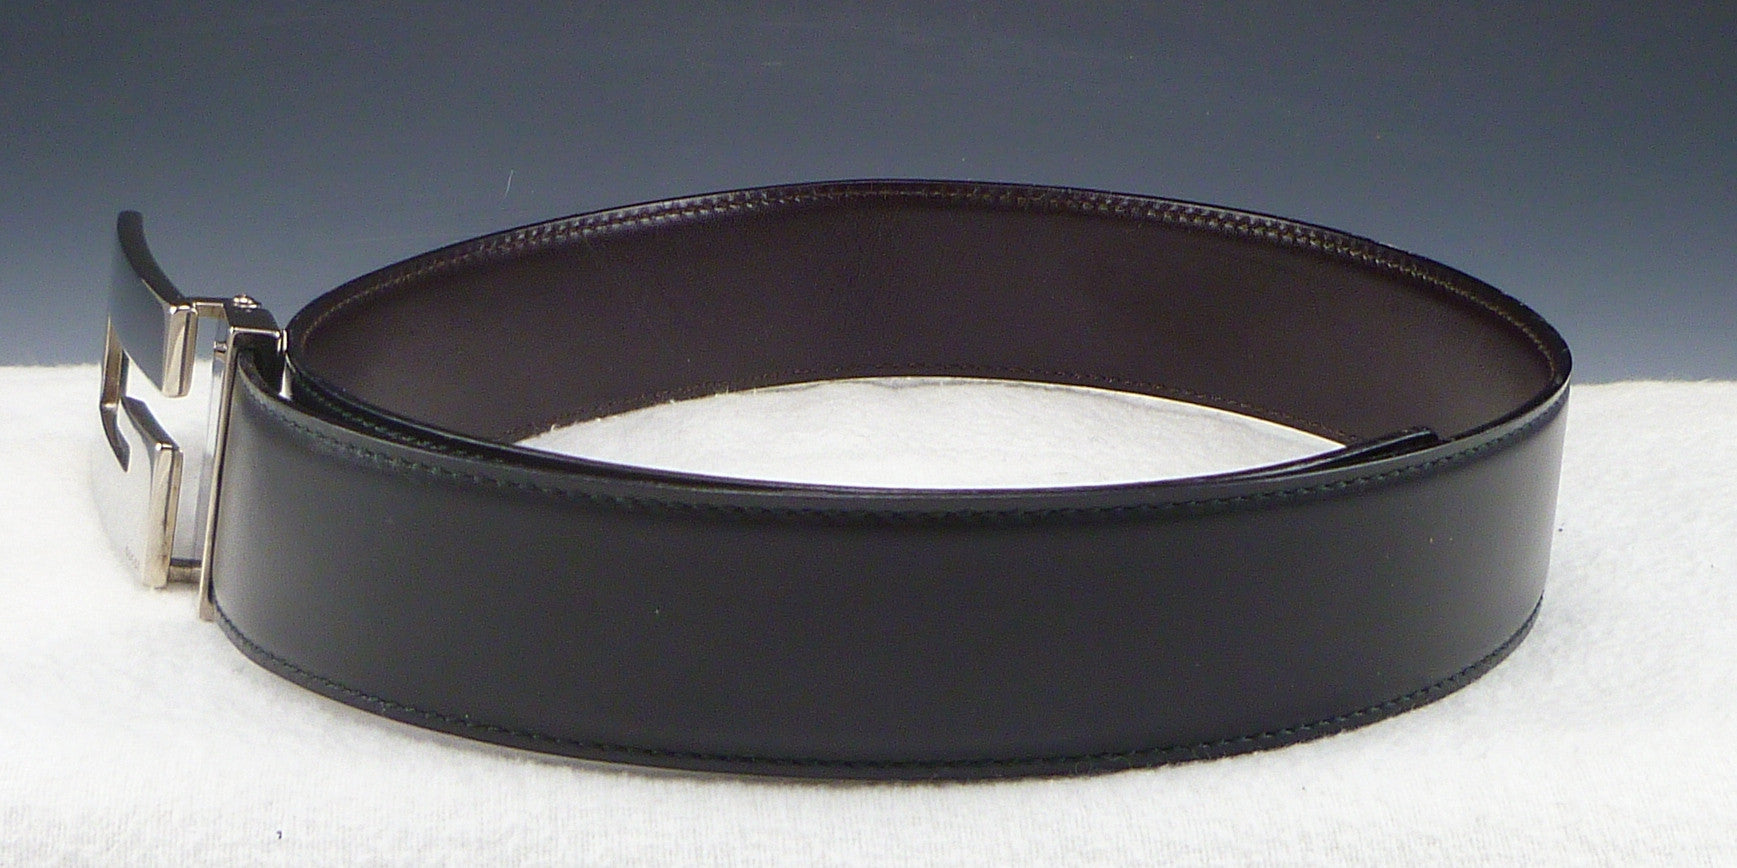 Gucci Sz 26 65 Rectangle G Buckle Belt Womens Black